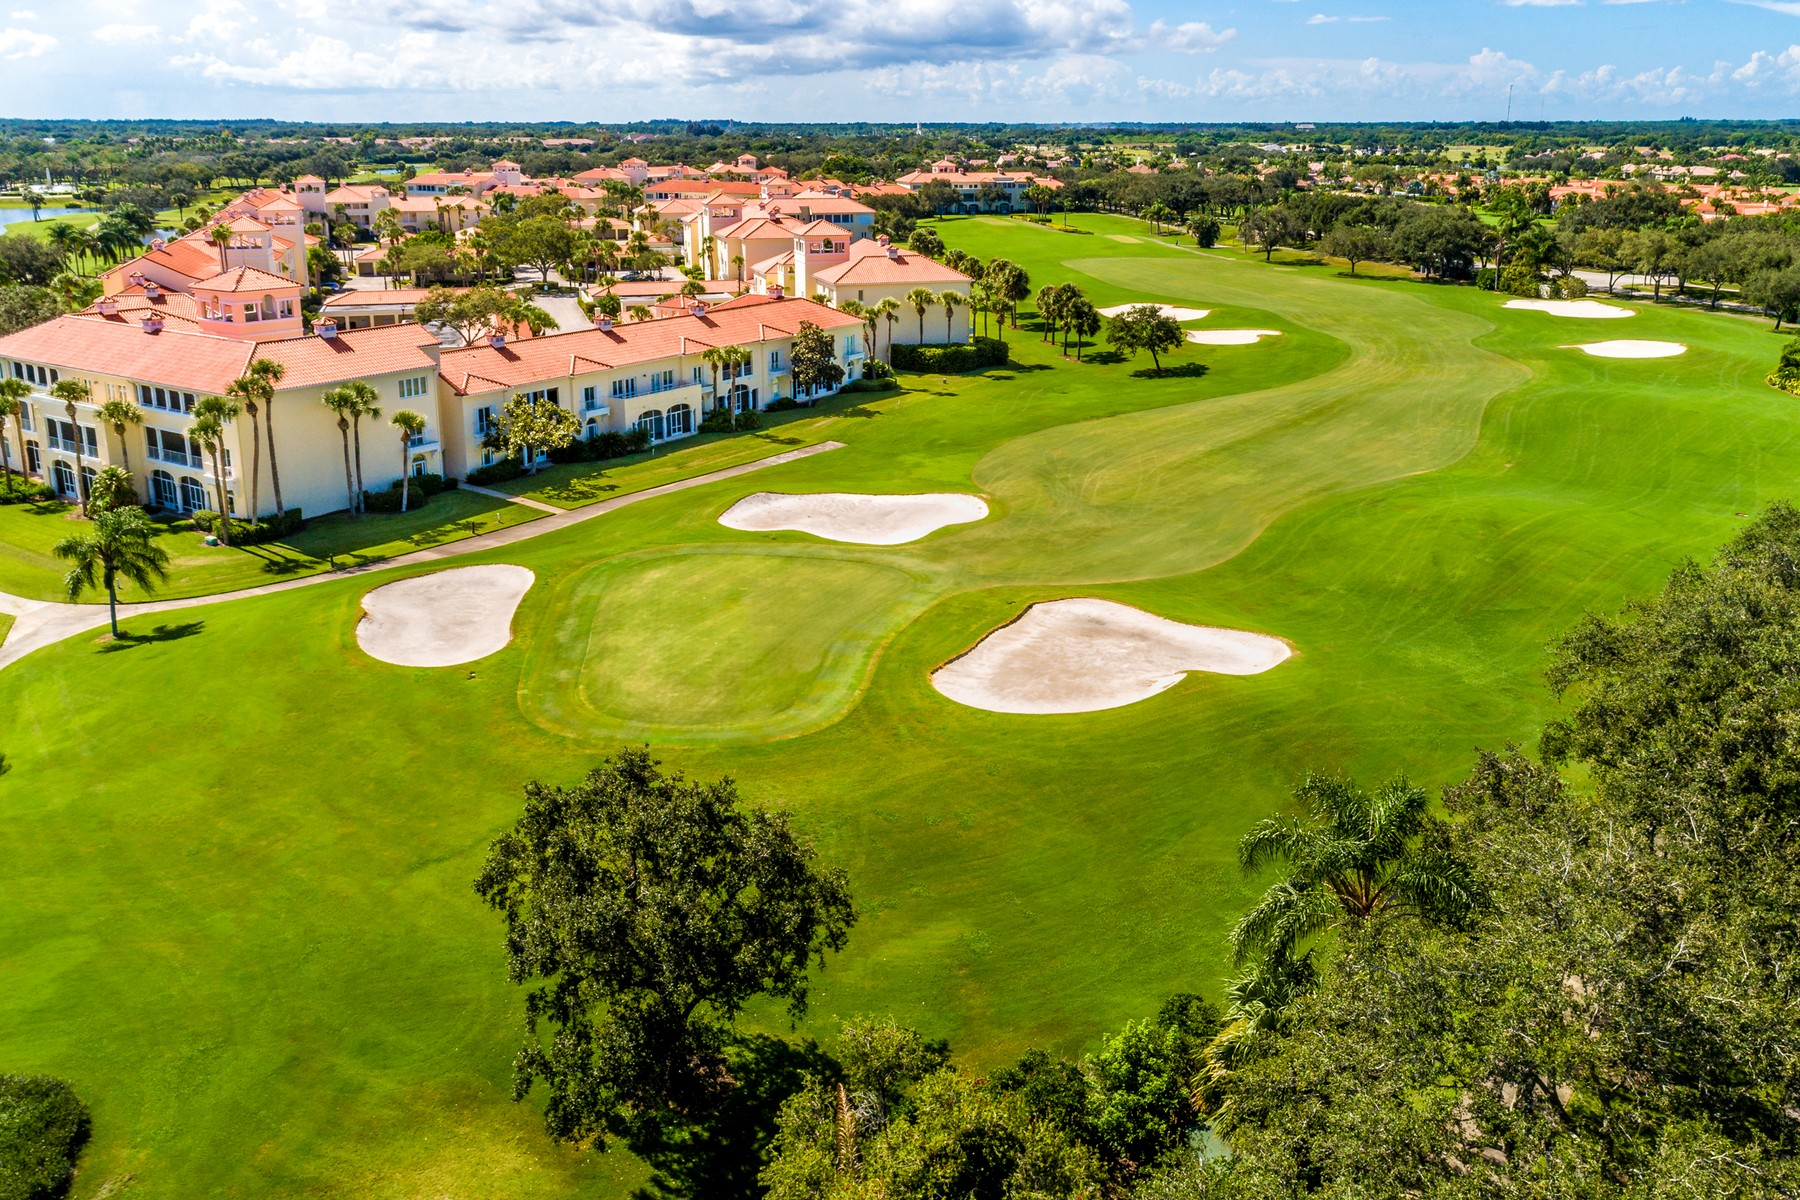 Additional photo for property listing at Direct Riverfront Contemporary Home 4812 Laguna Village Way Vero Beach, Florida 32967 United States